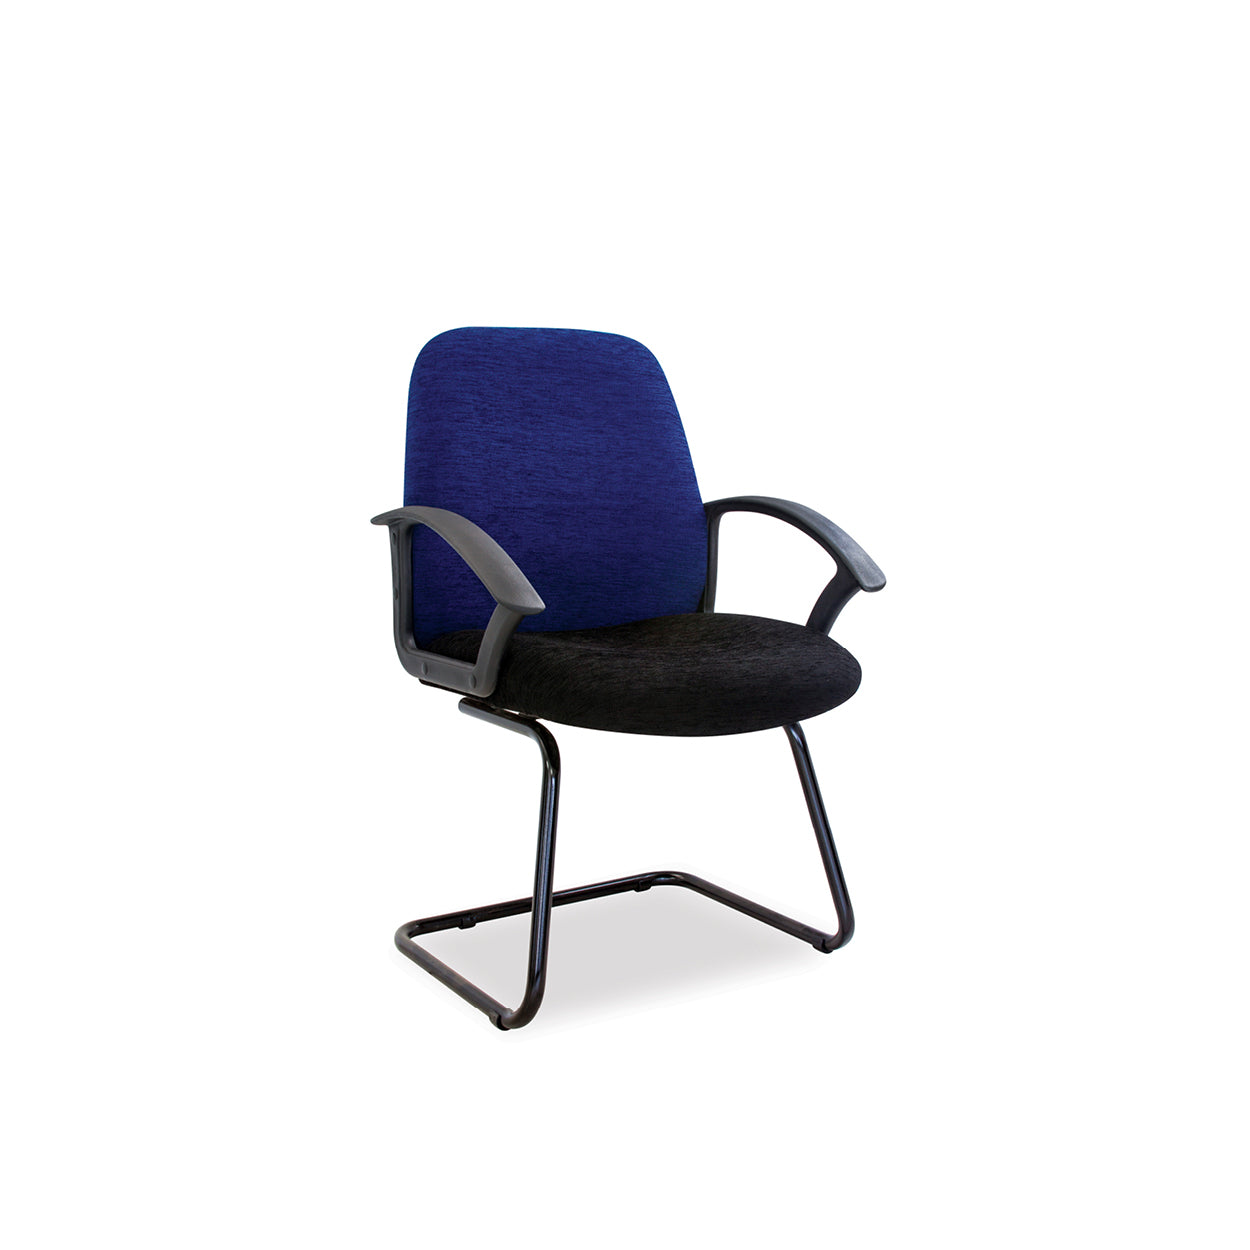 Hedcor Montego visitors office chair